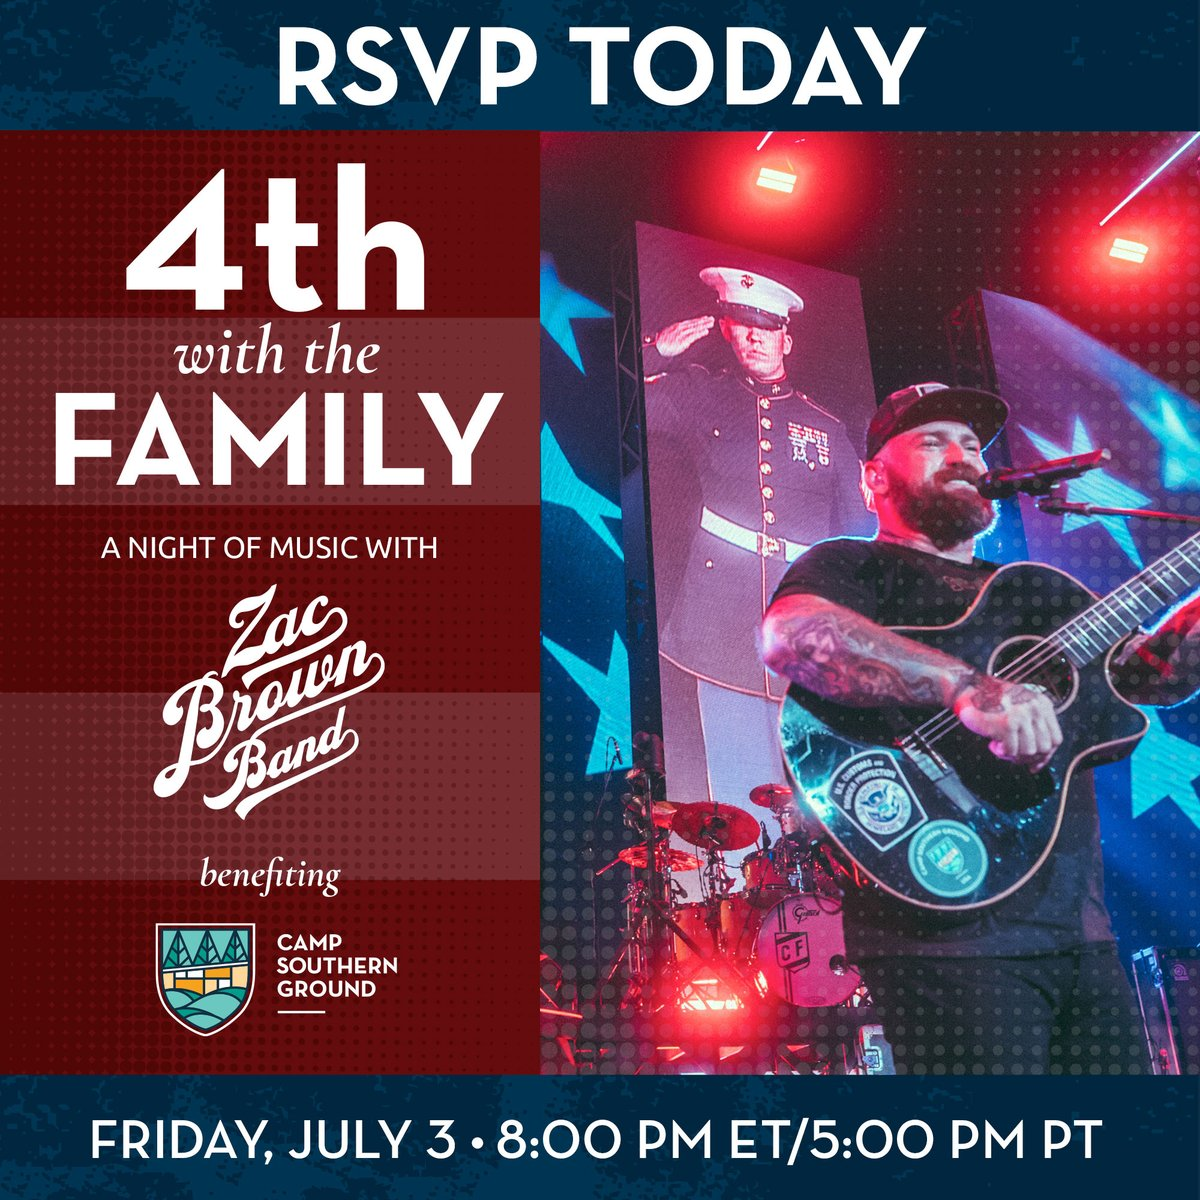 Don't miss @zacbrownband performing together for the first time since their Spring 2020 tour was canceled, all to support our veteran programs!   RSVP: https://t.co/iP0fmprwFm DONATE: https://t.co/XmTkllVmZr  Thank you to sponsors @earthlink, @Lovesac, & Johnny Mac Soldiers Fund. https://t.co/SPmhBJ5HXg